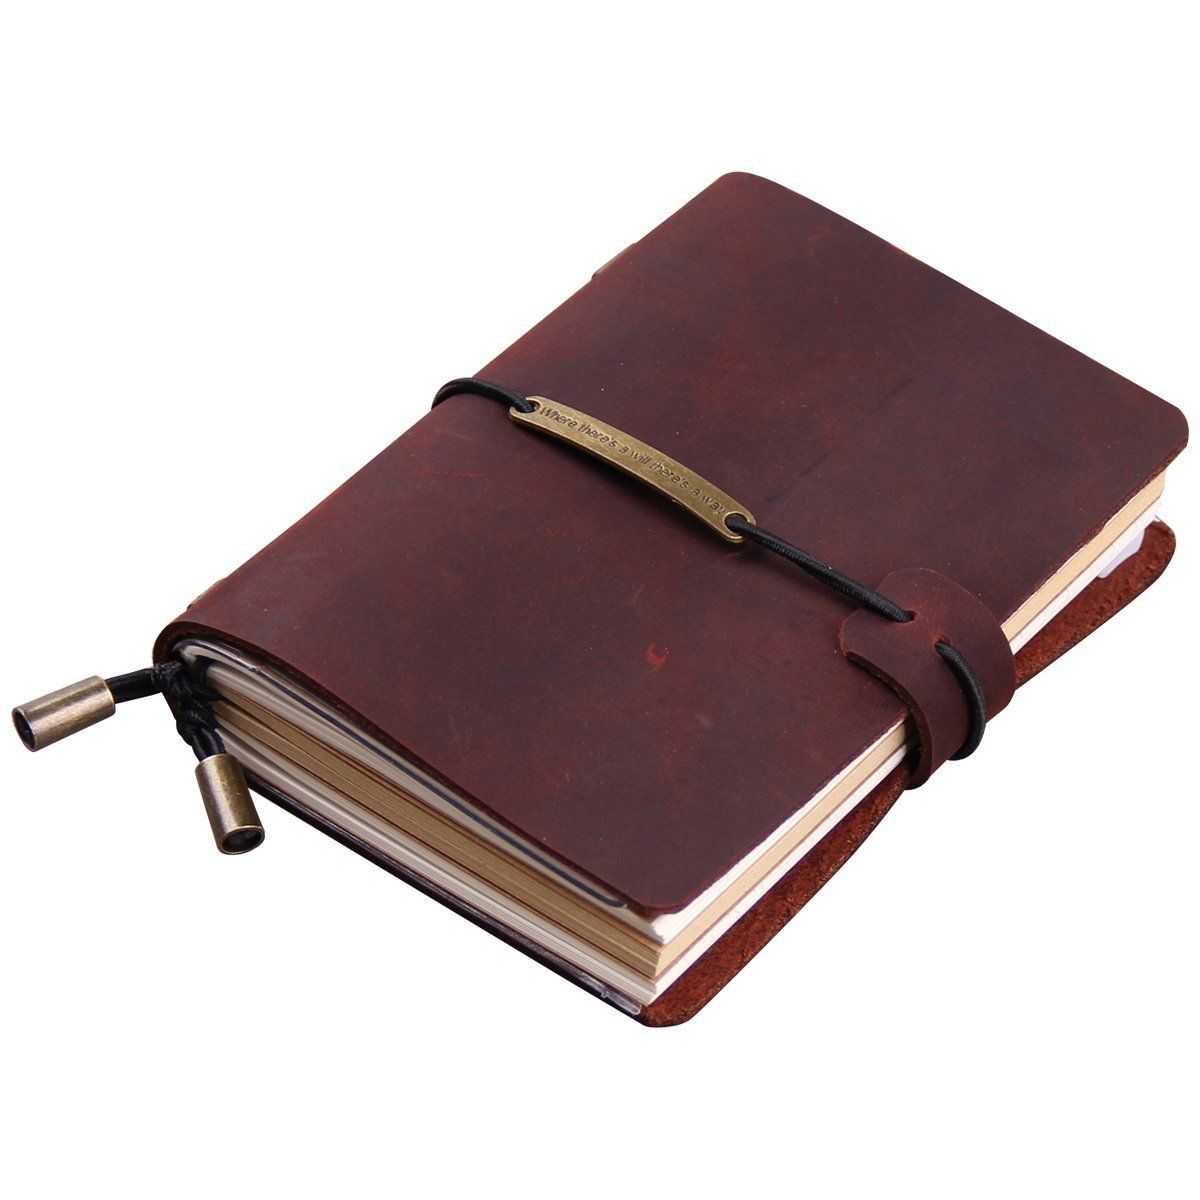 Handmade Travelers Notebook,Leather Travel Journal Notebook for Men & Women,Perfect for Writing, Gifts, Travelers, 5.2 x 4